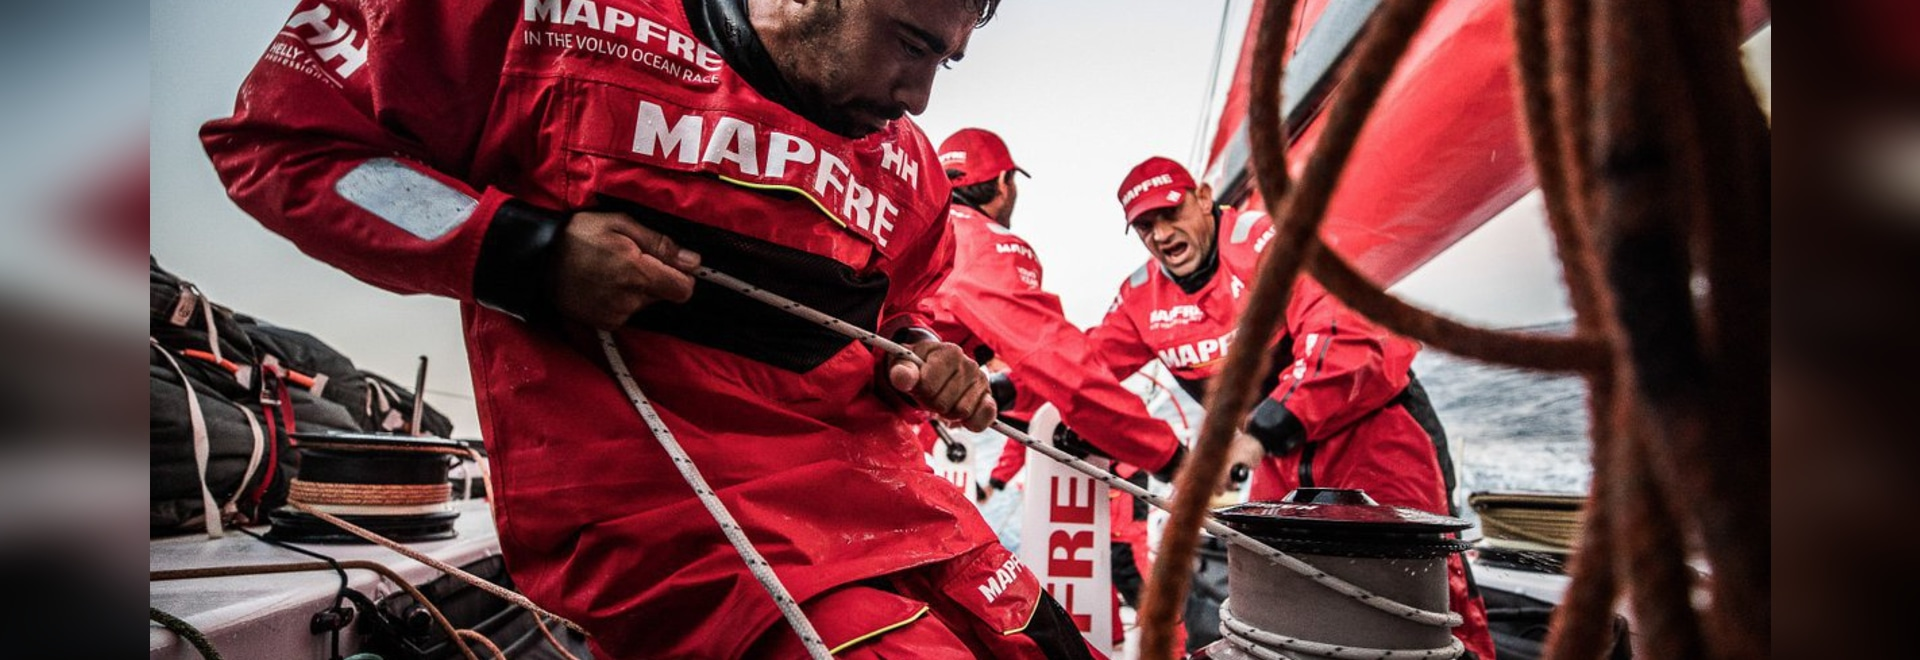 Helly Hansen is the official clothing supplier to The Ocean Race